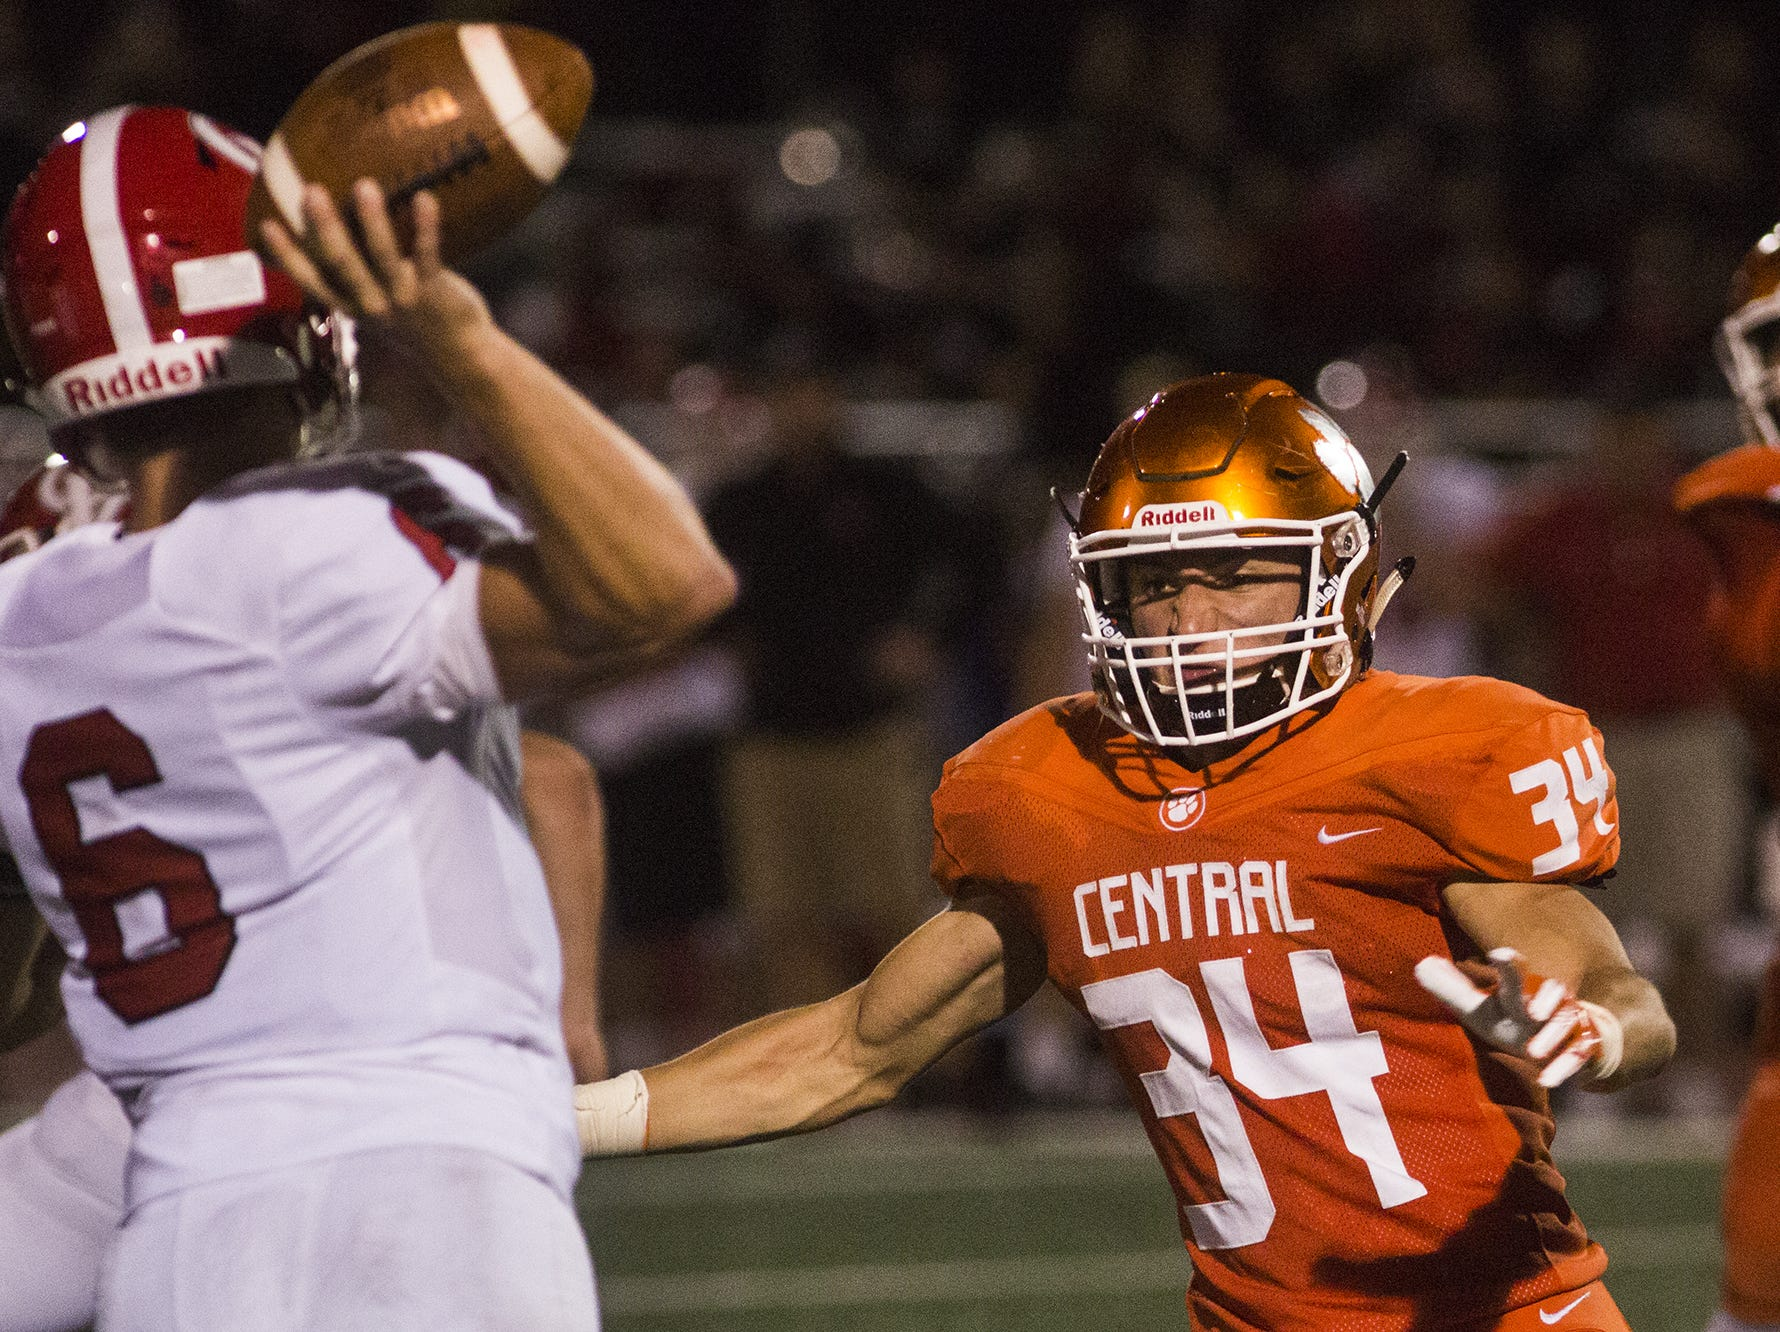 Central York's Anthony Tsirigos, right, pressures Cumberland Valley quarterback Jared Plessinger. Central York defeats Cumberland Valley 31-14 in football at Central York High School in Springettsbury Township, Friday, August 31, 2018.